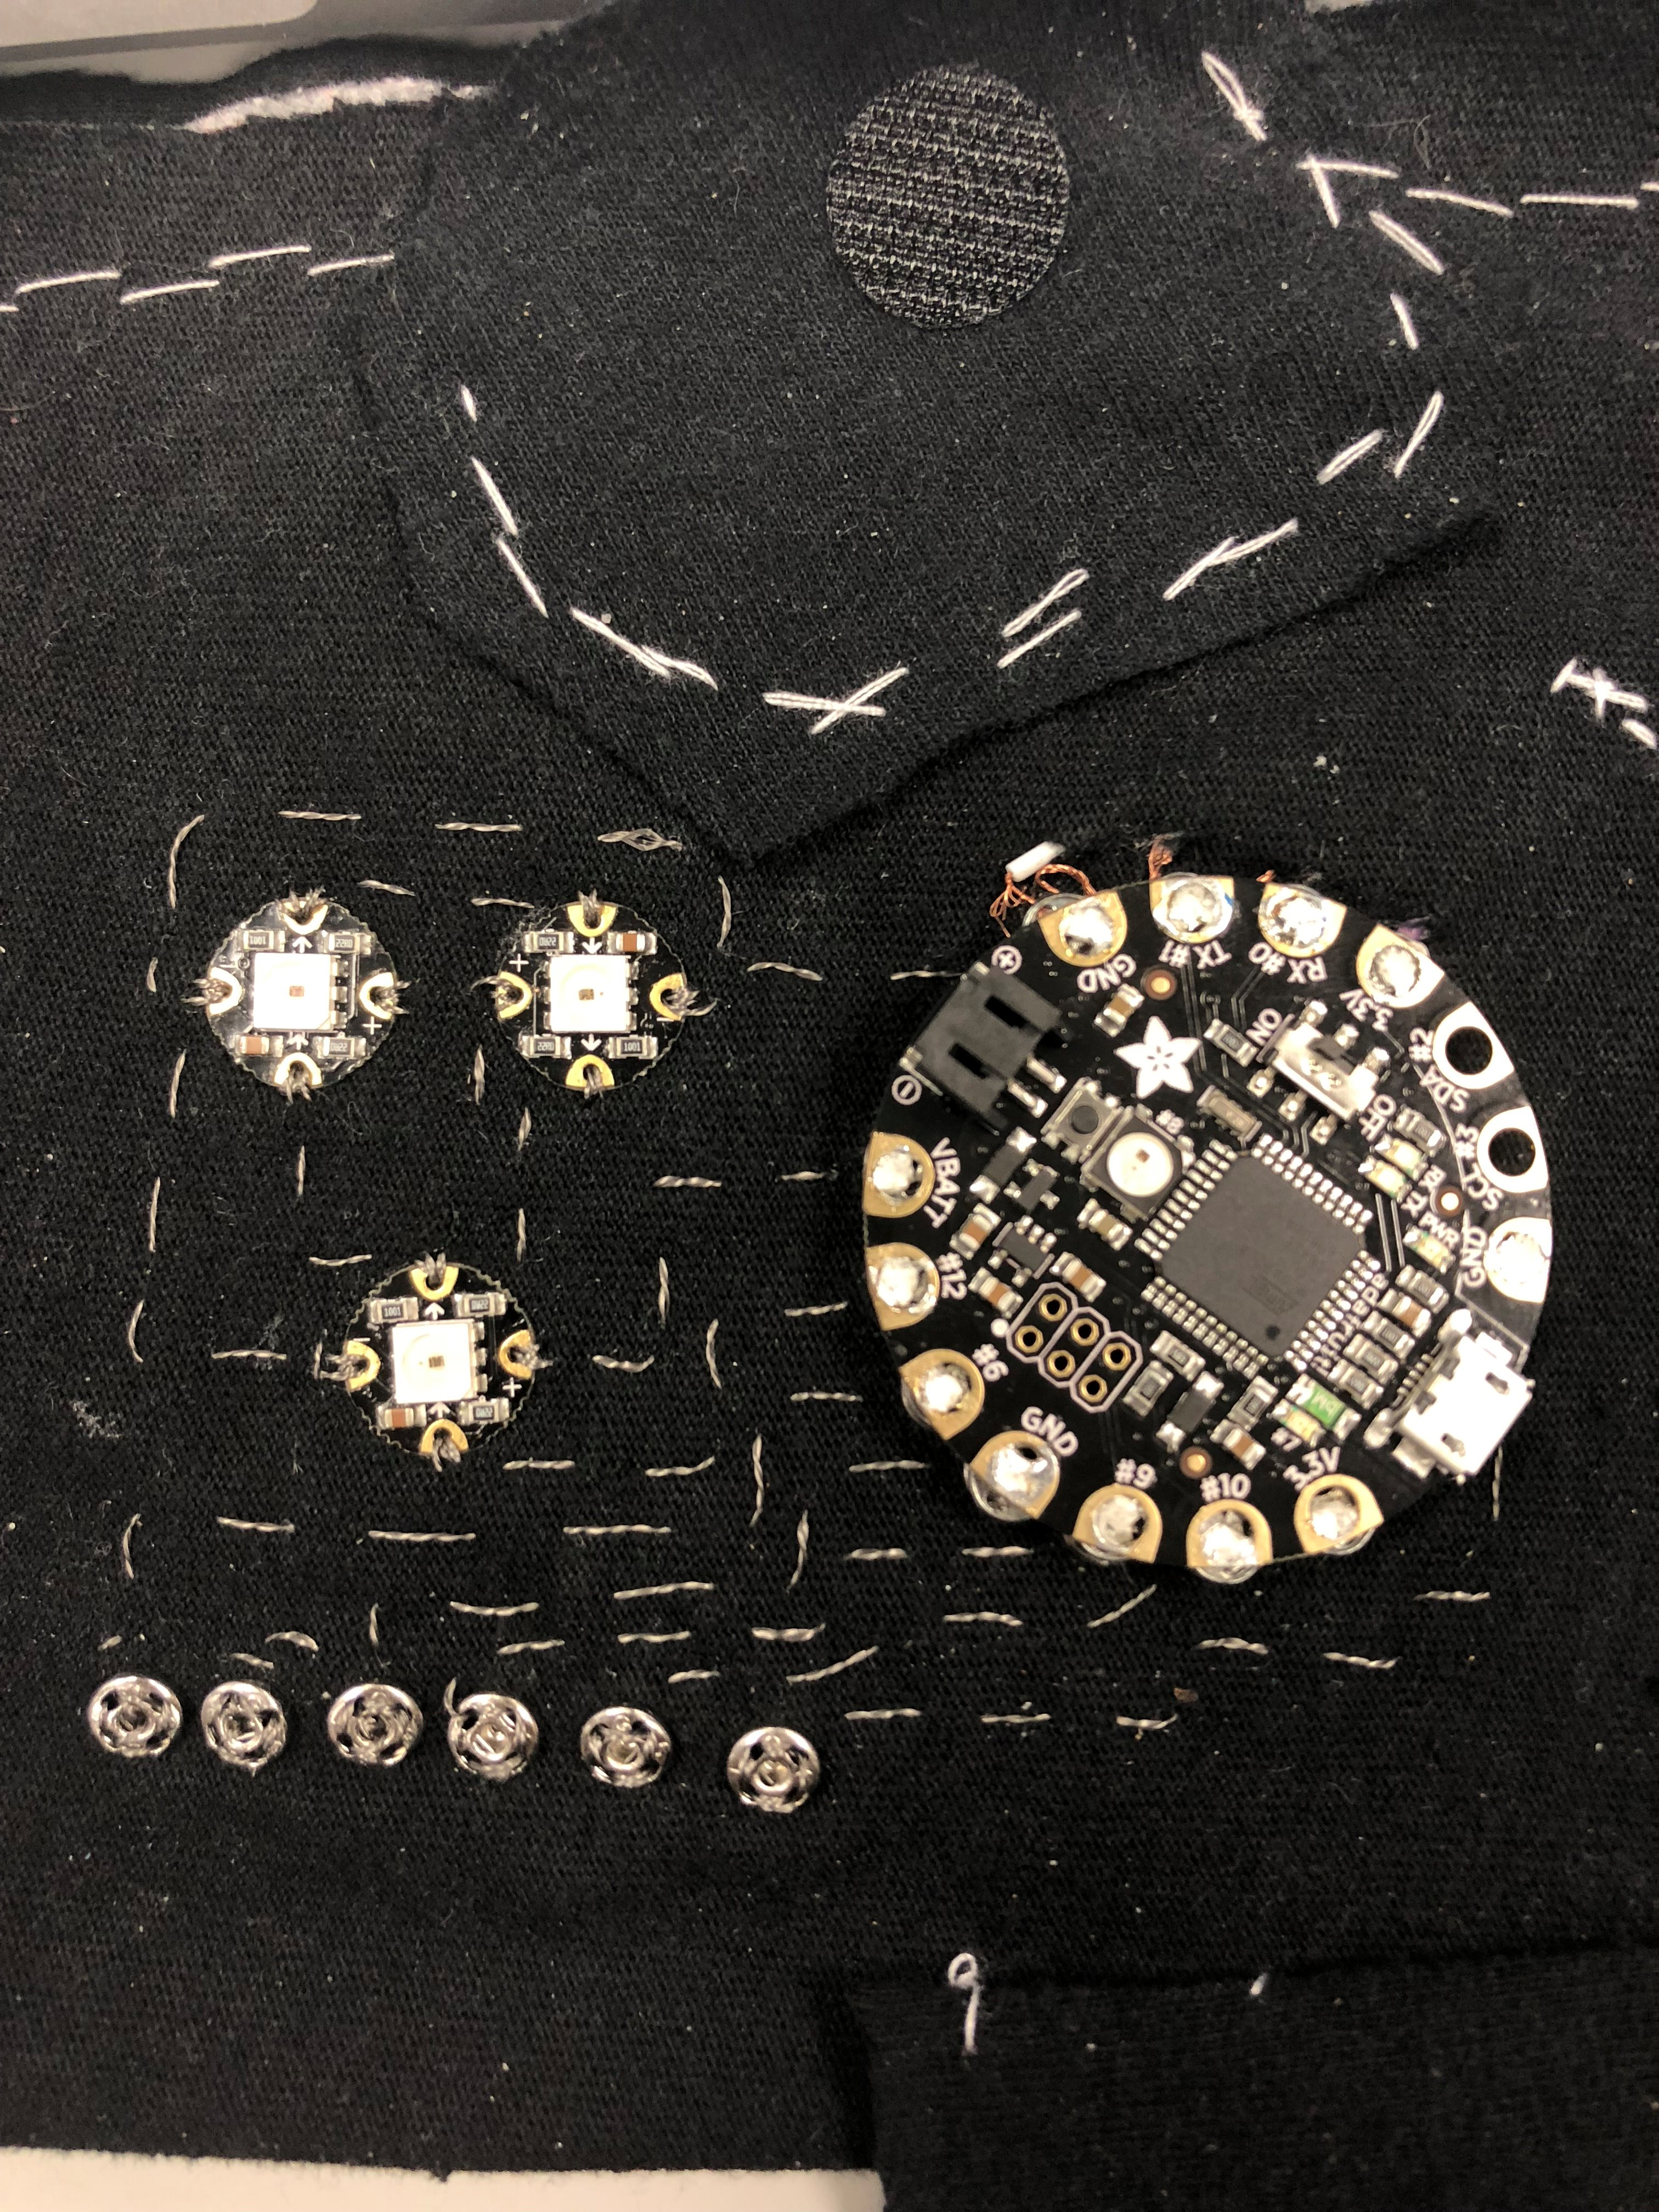 Picture of Assembling a Prototype: Soldering